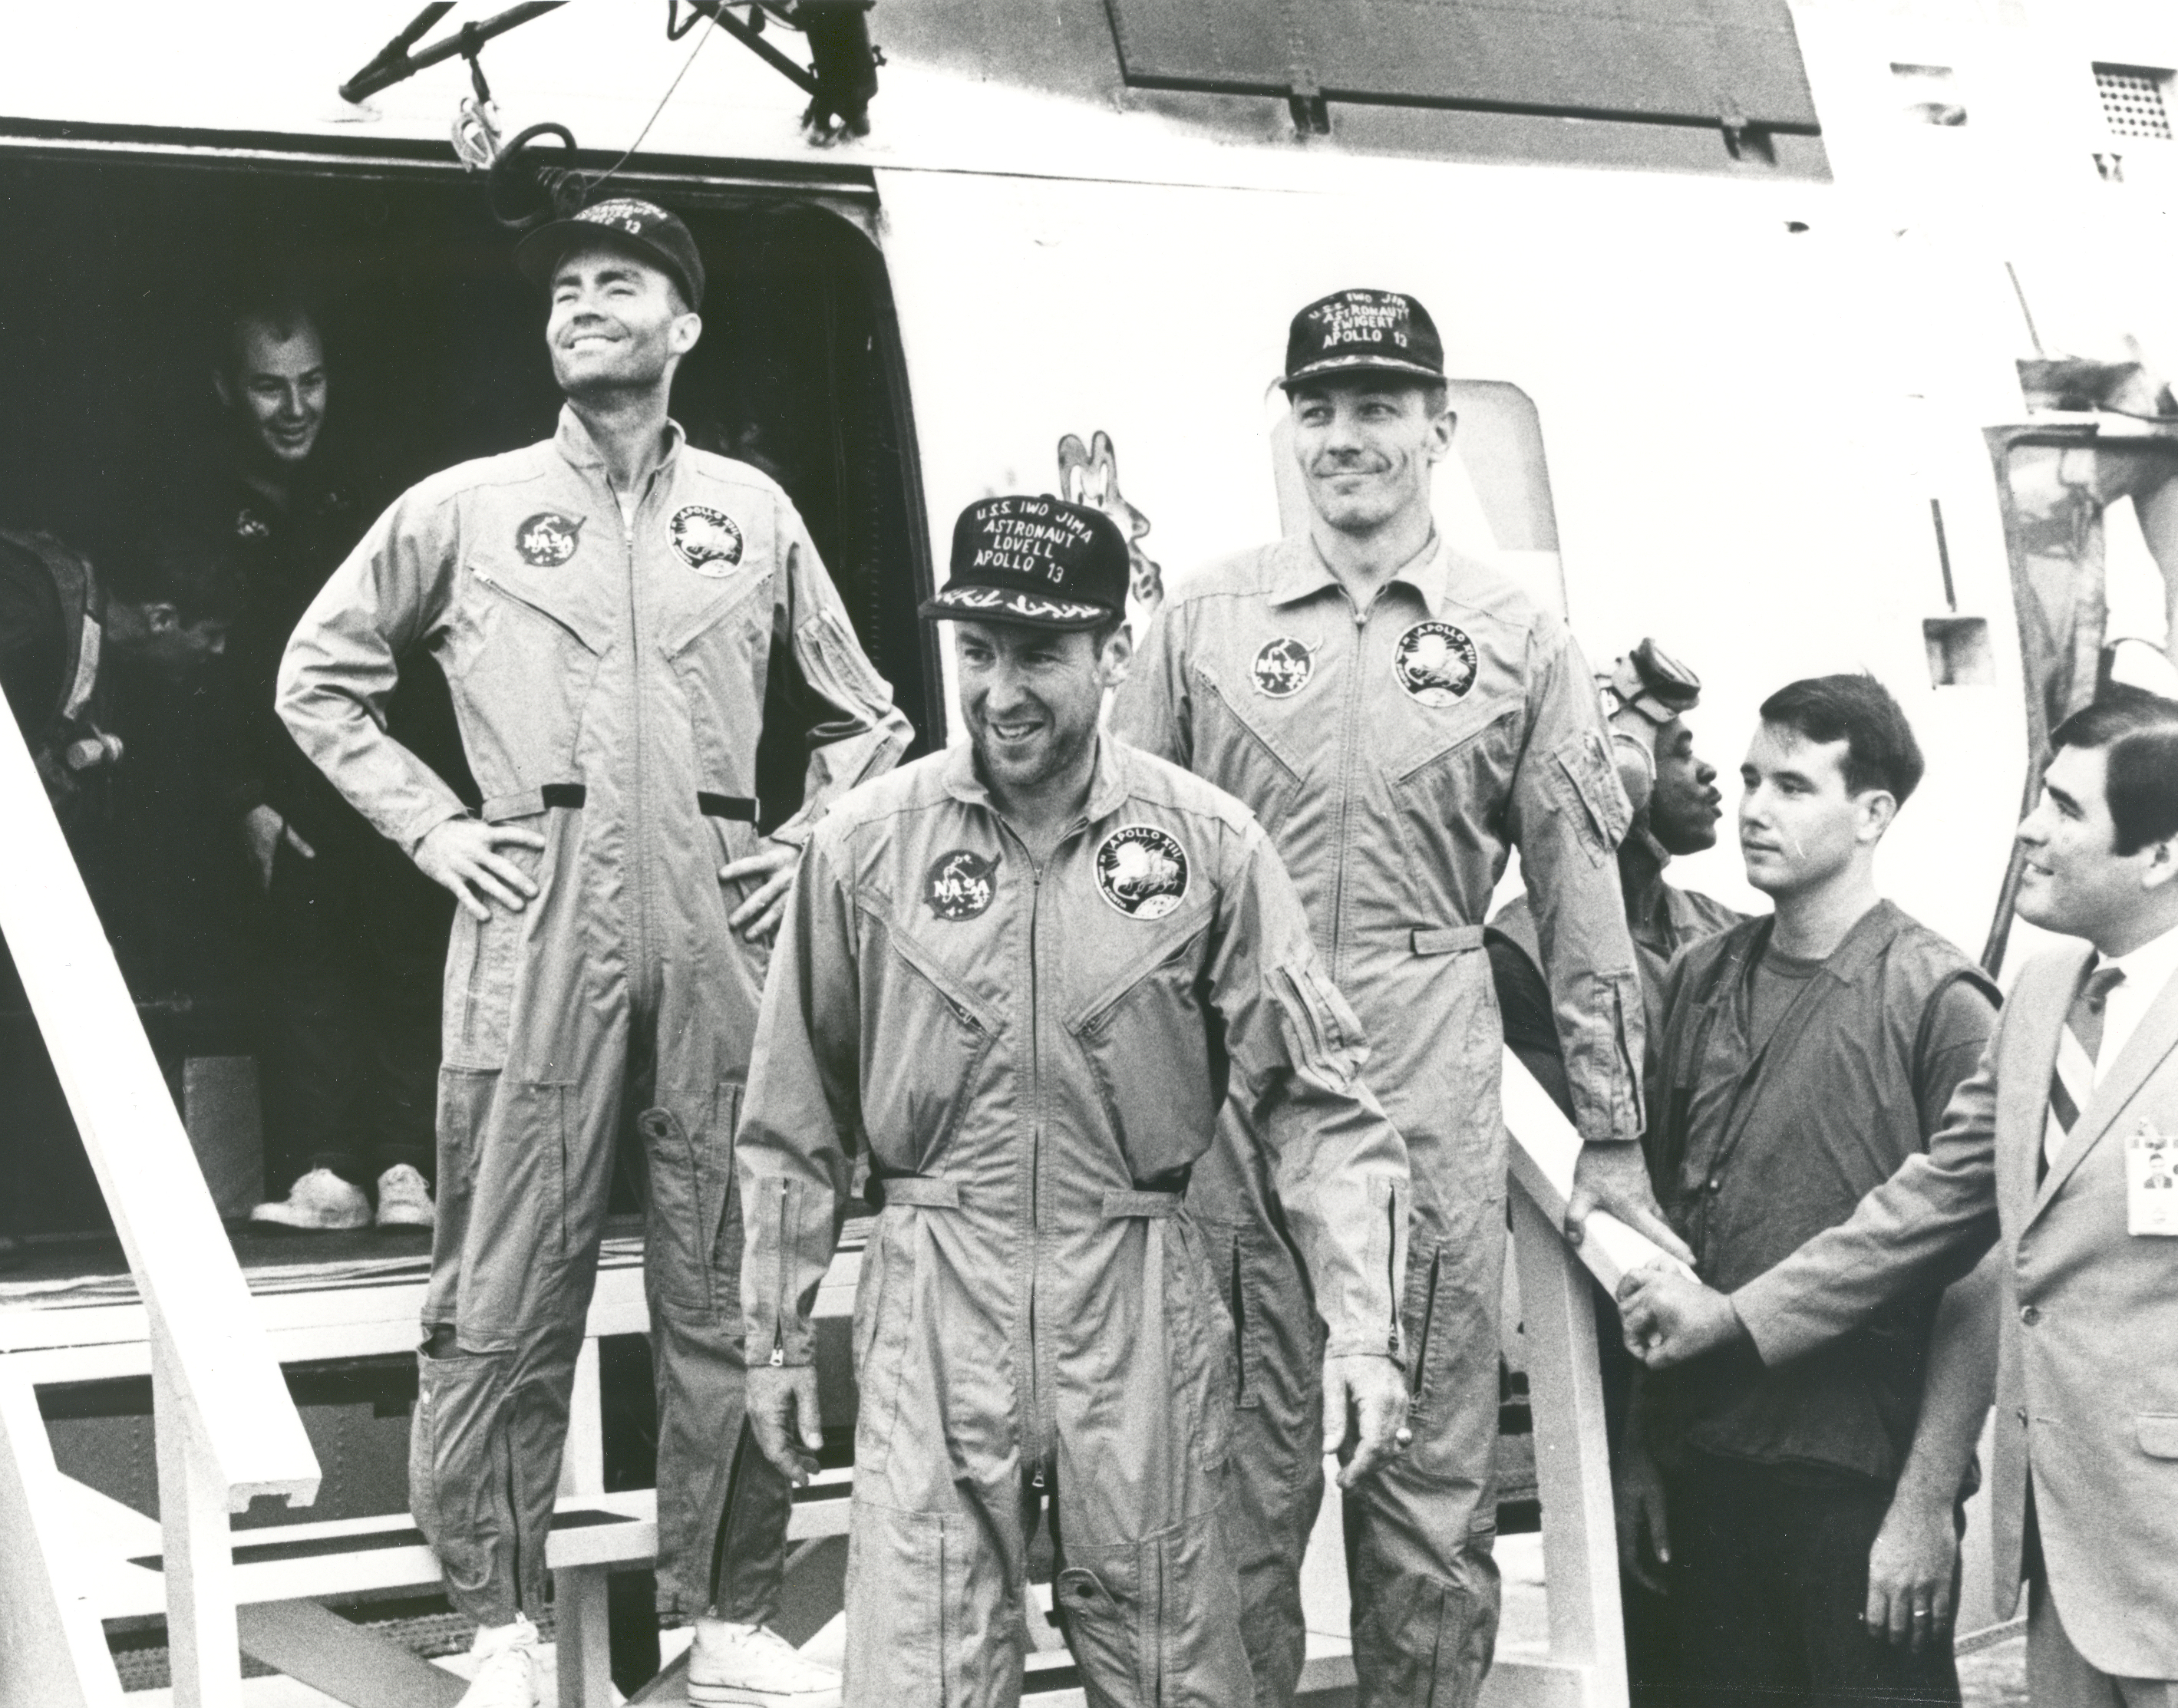 space apollo mission astronauts - photo #39